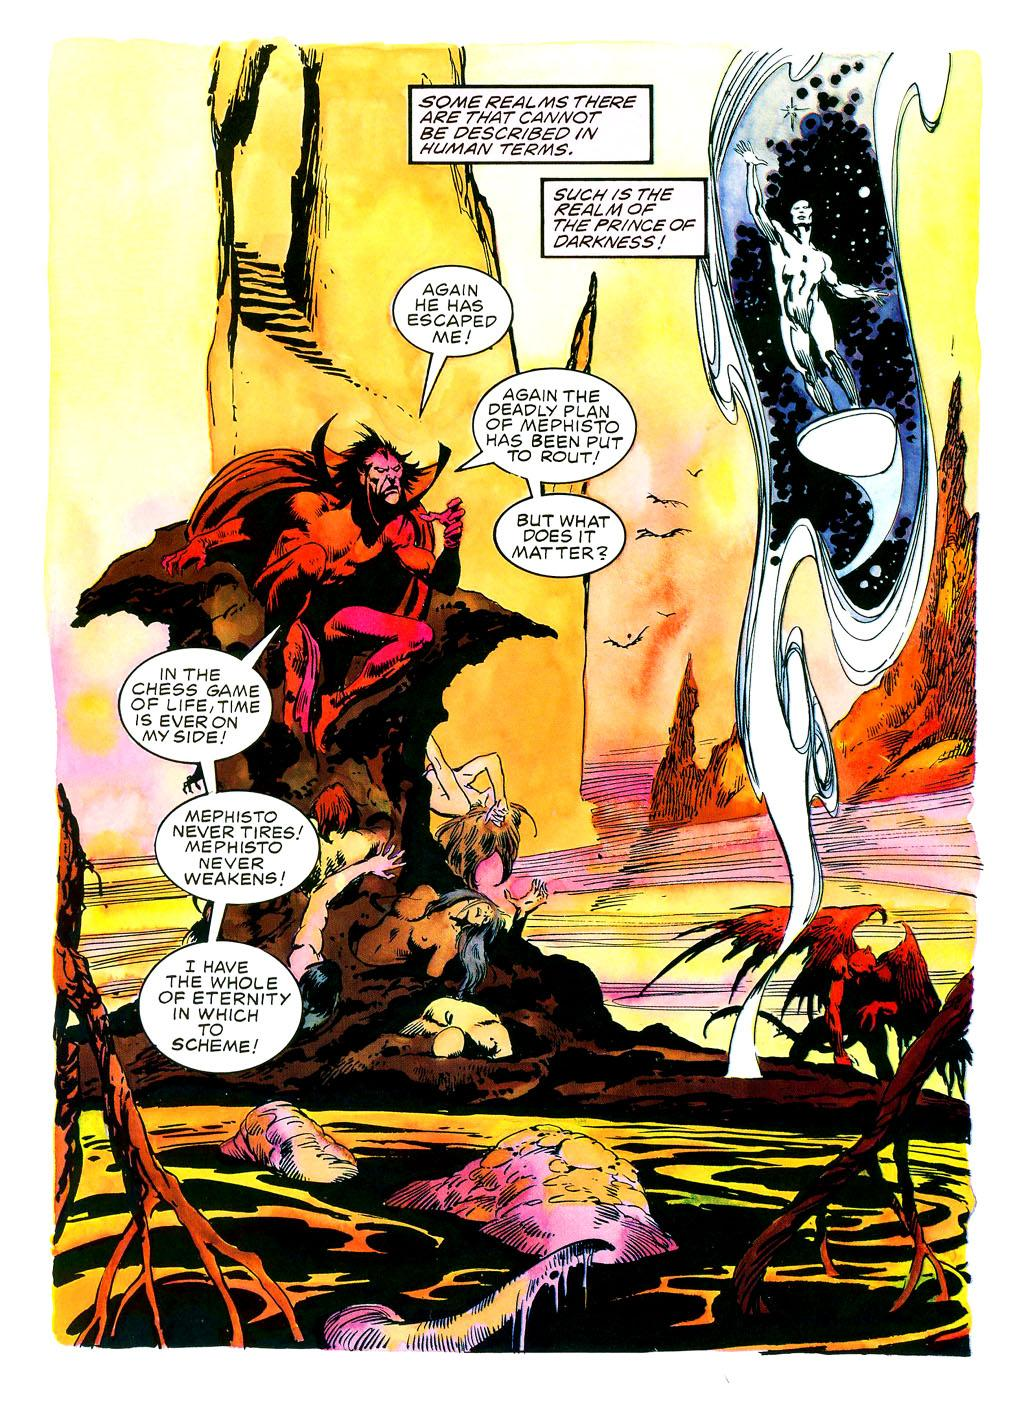 Silver Surfer Judgment Day review